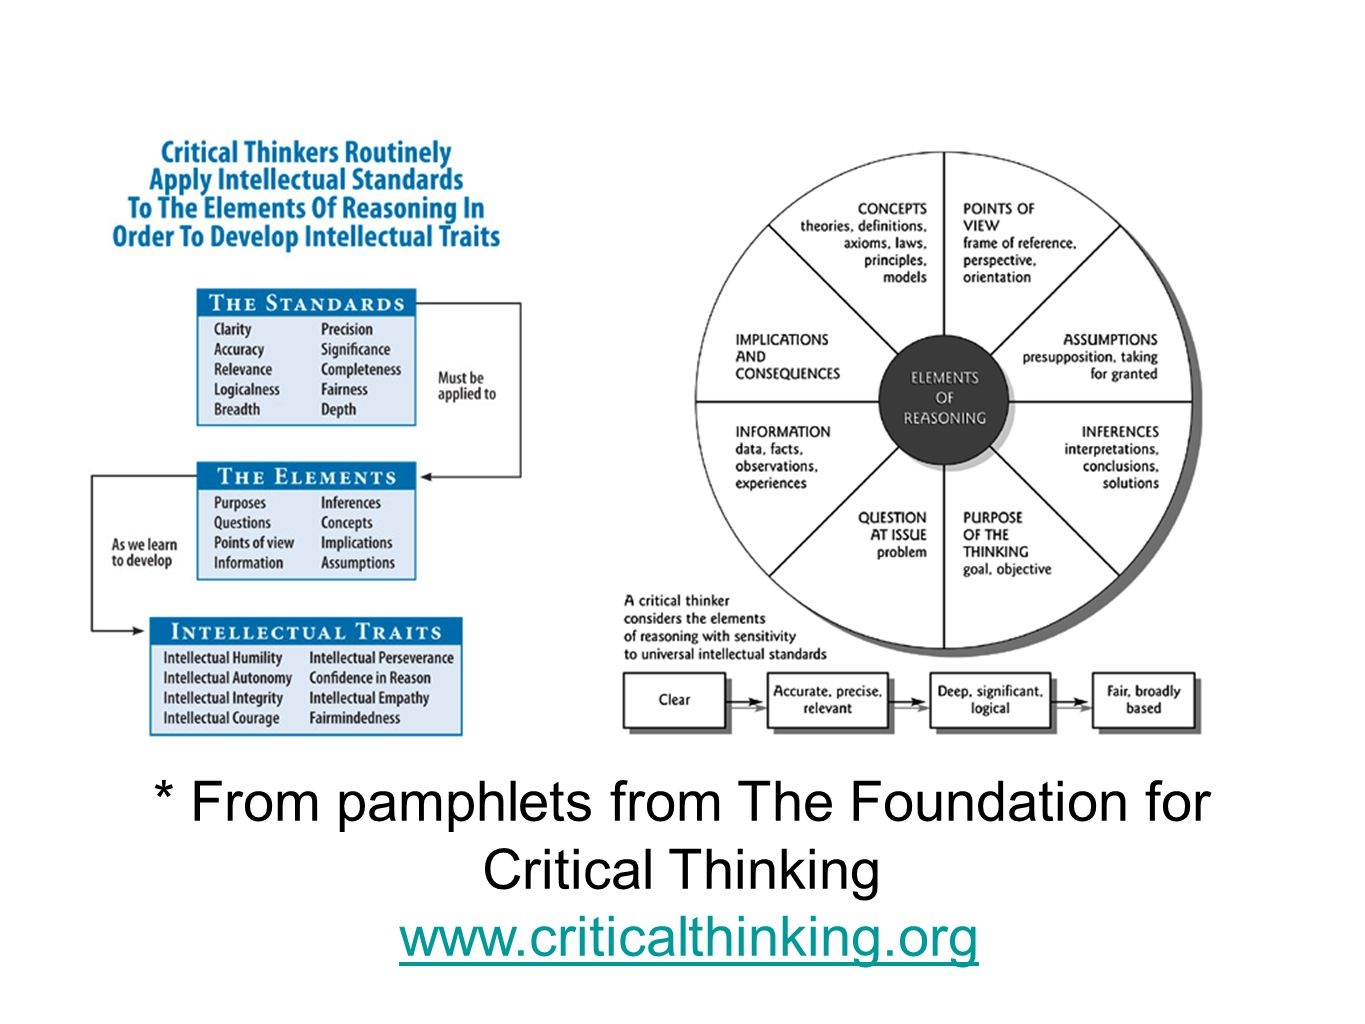 * From pamphlets from The Foundation for Critical Thinking www.criticalthinking.org